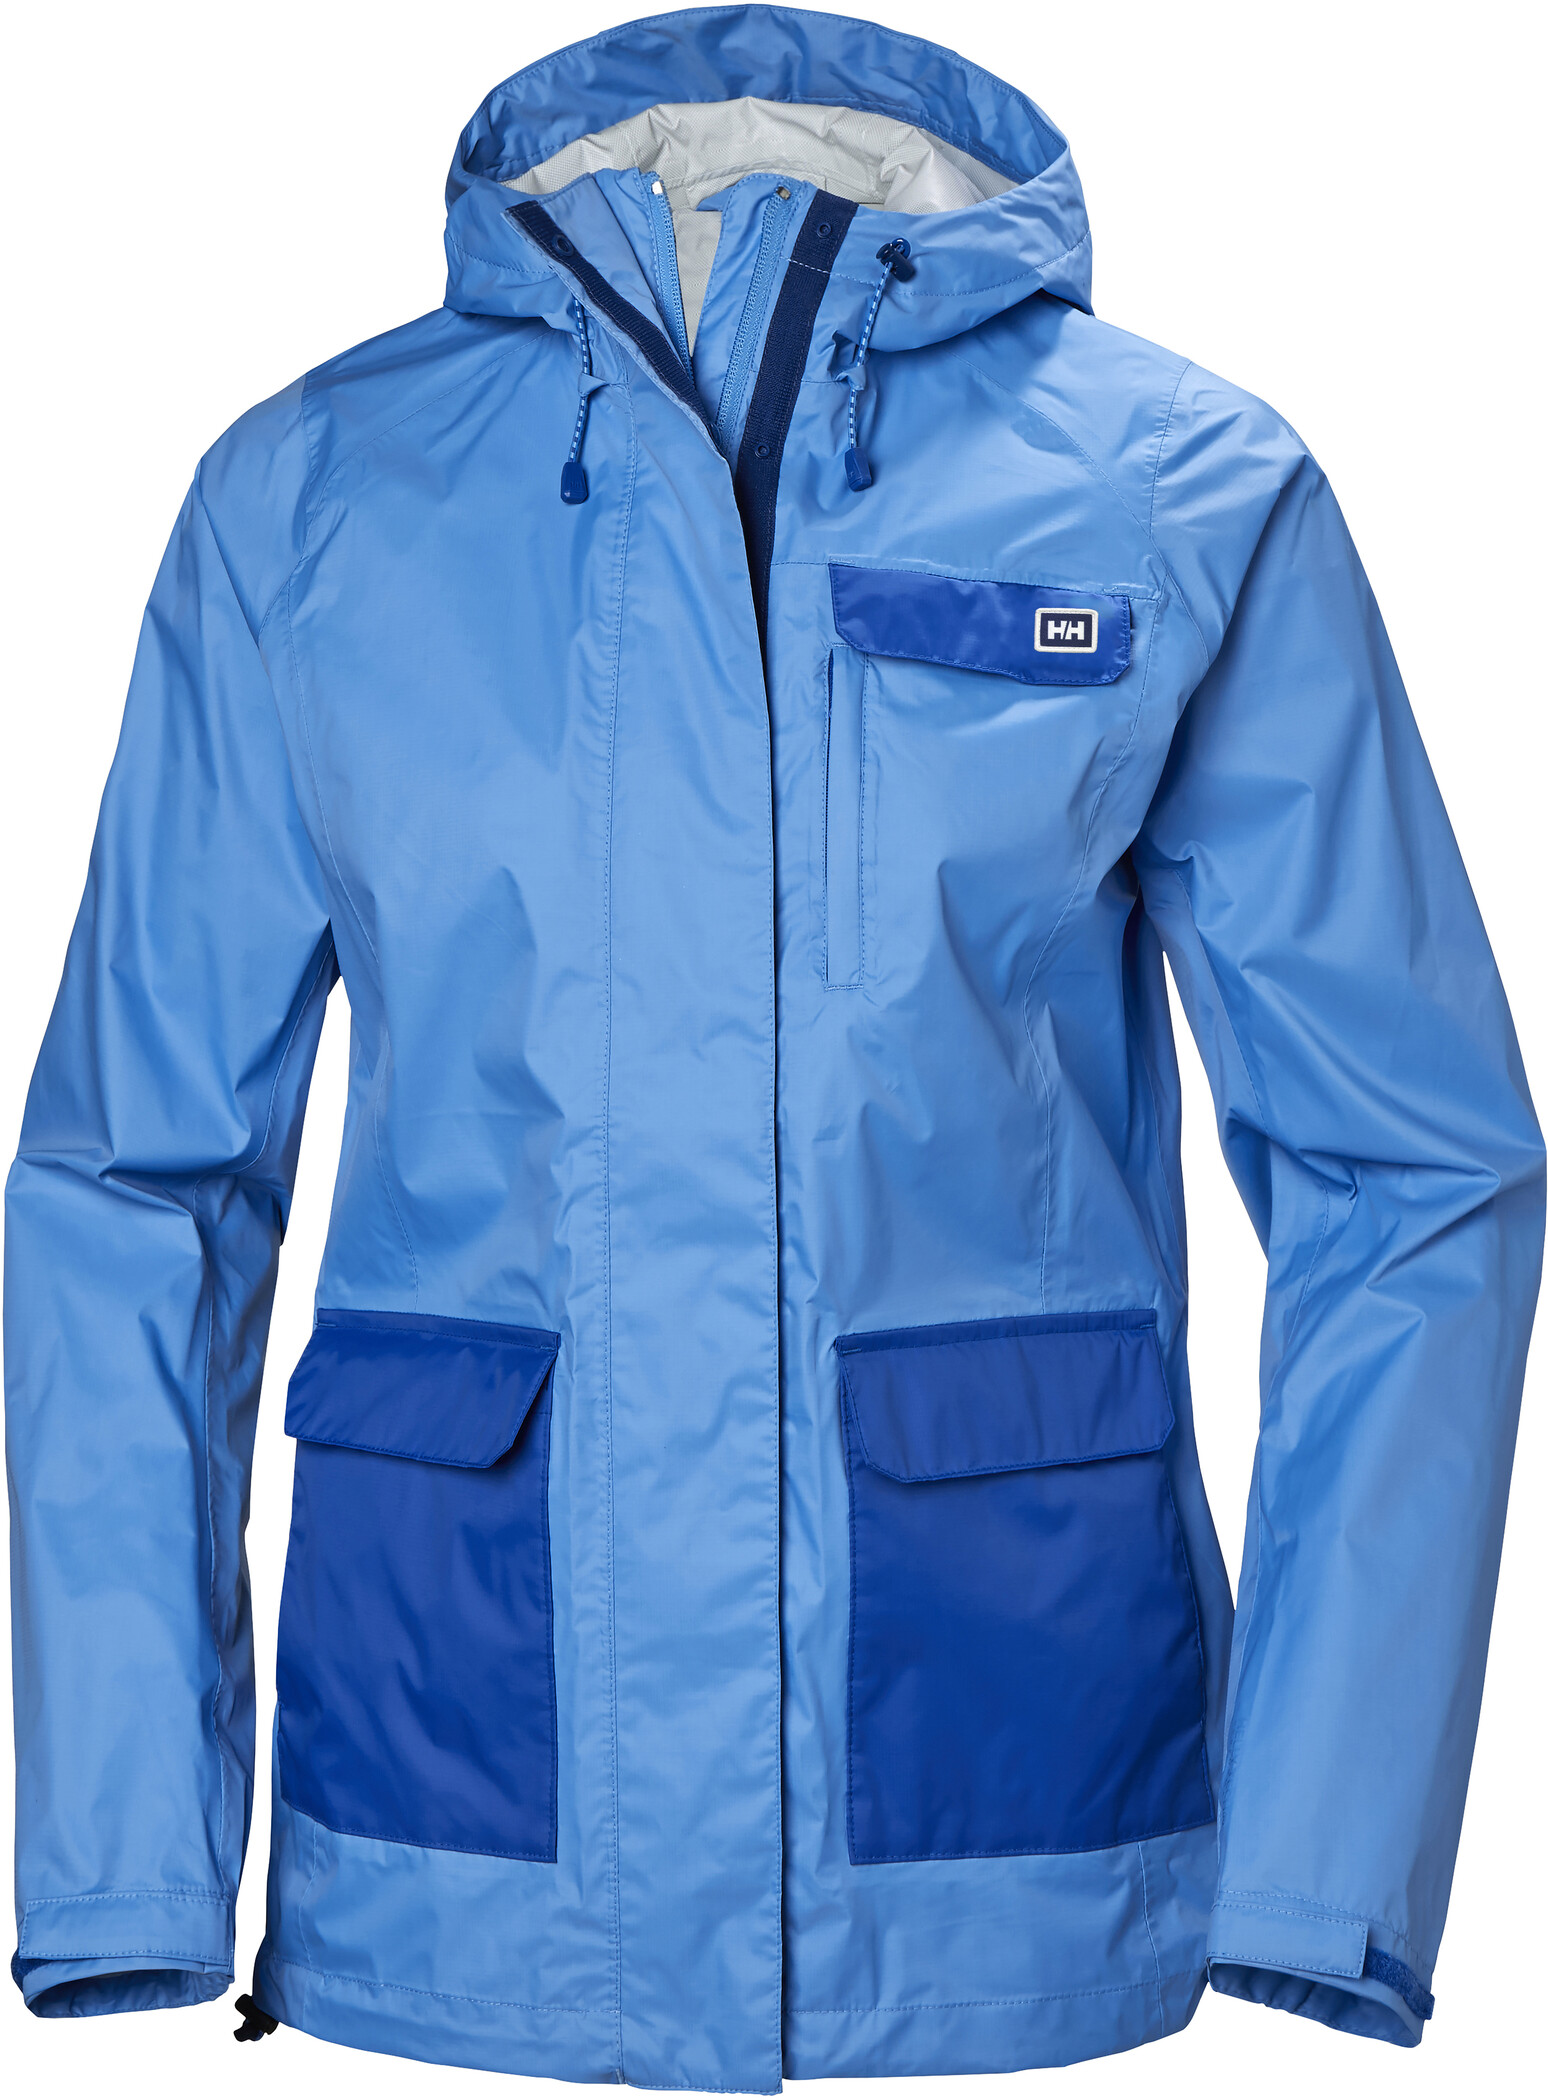 Helly Hansen Roam 2.5L Jacket Dam cornflower